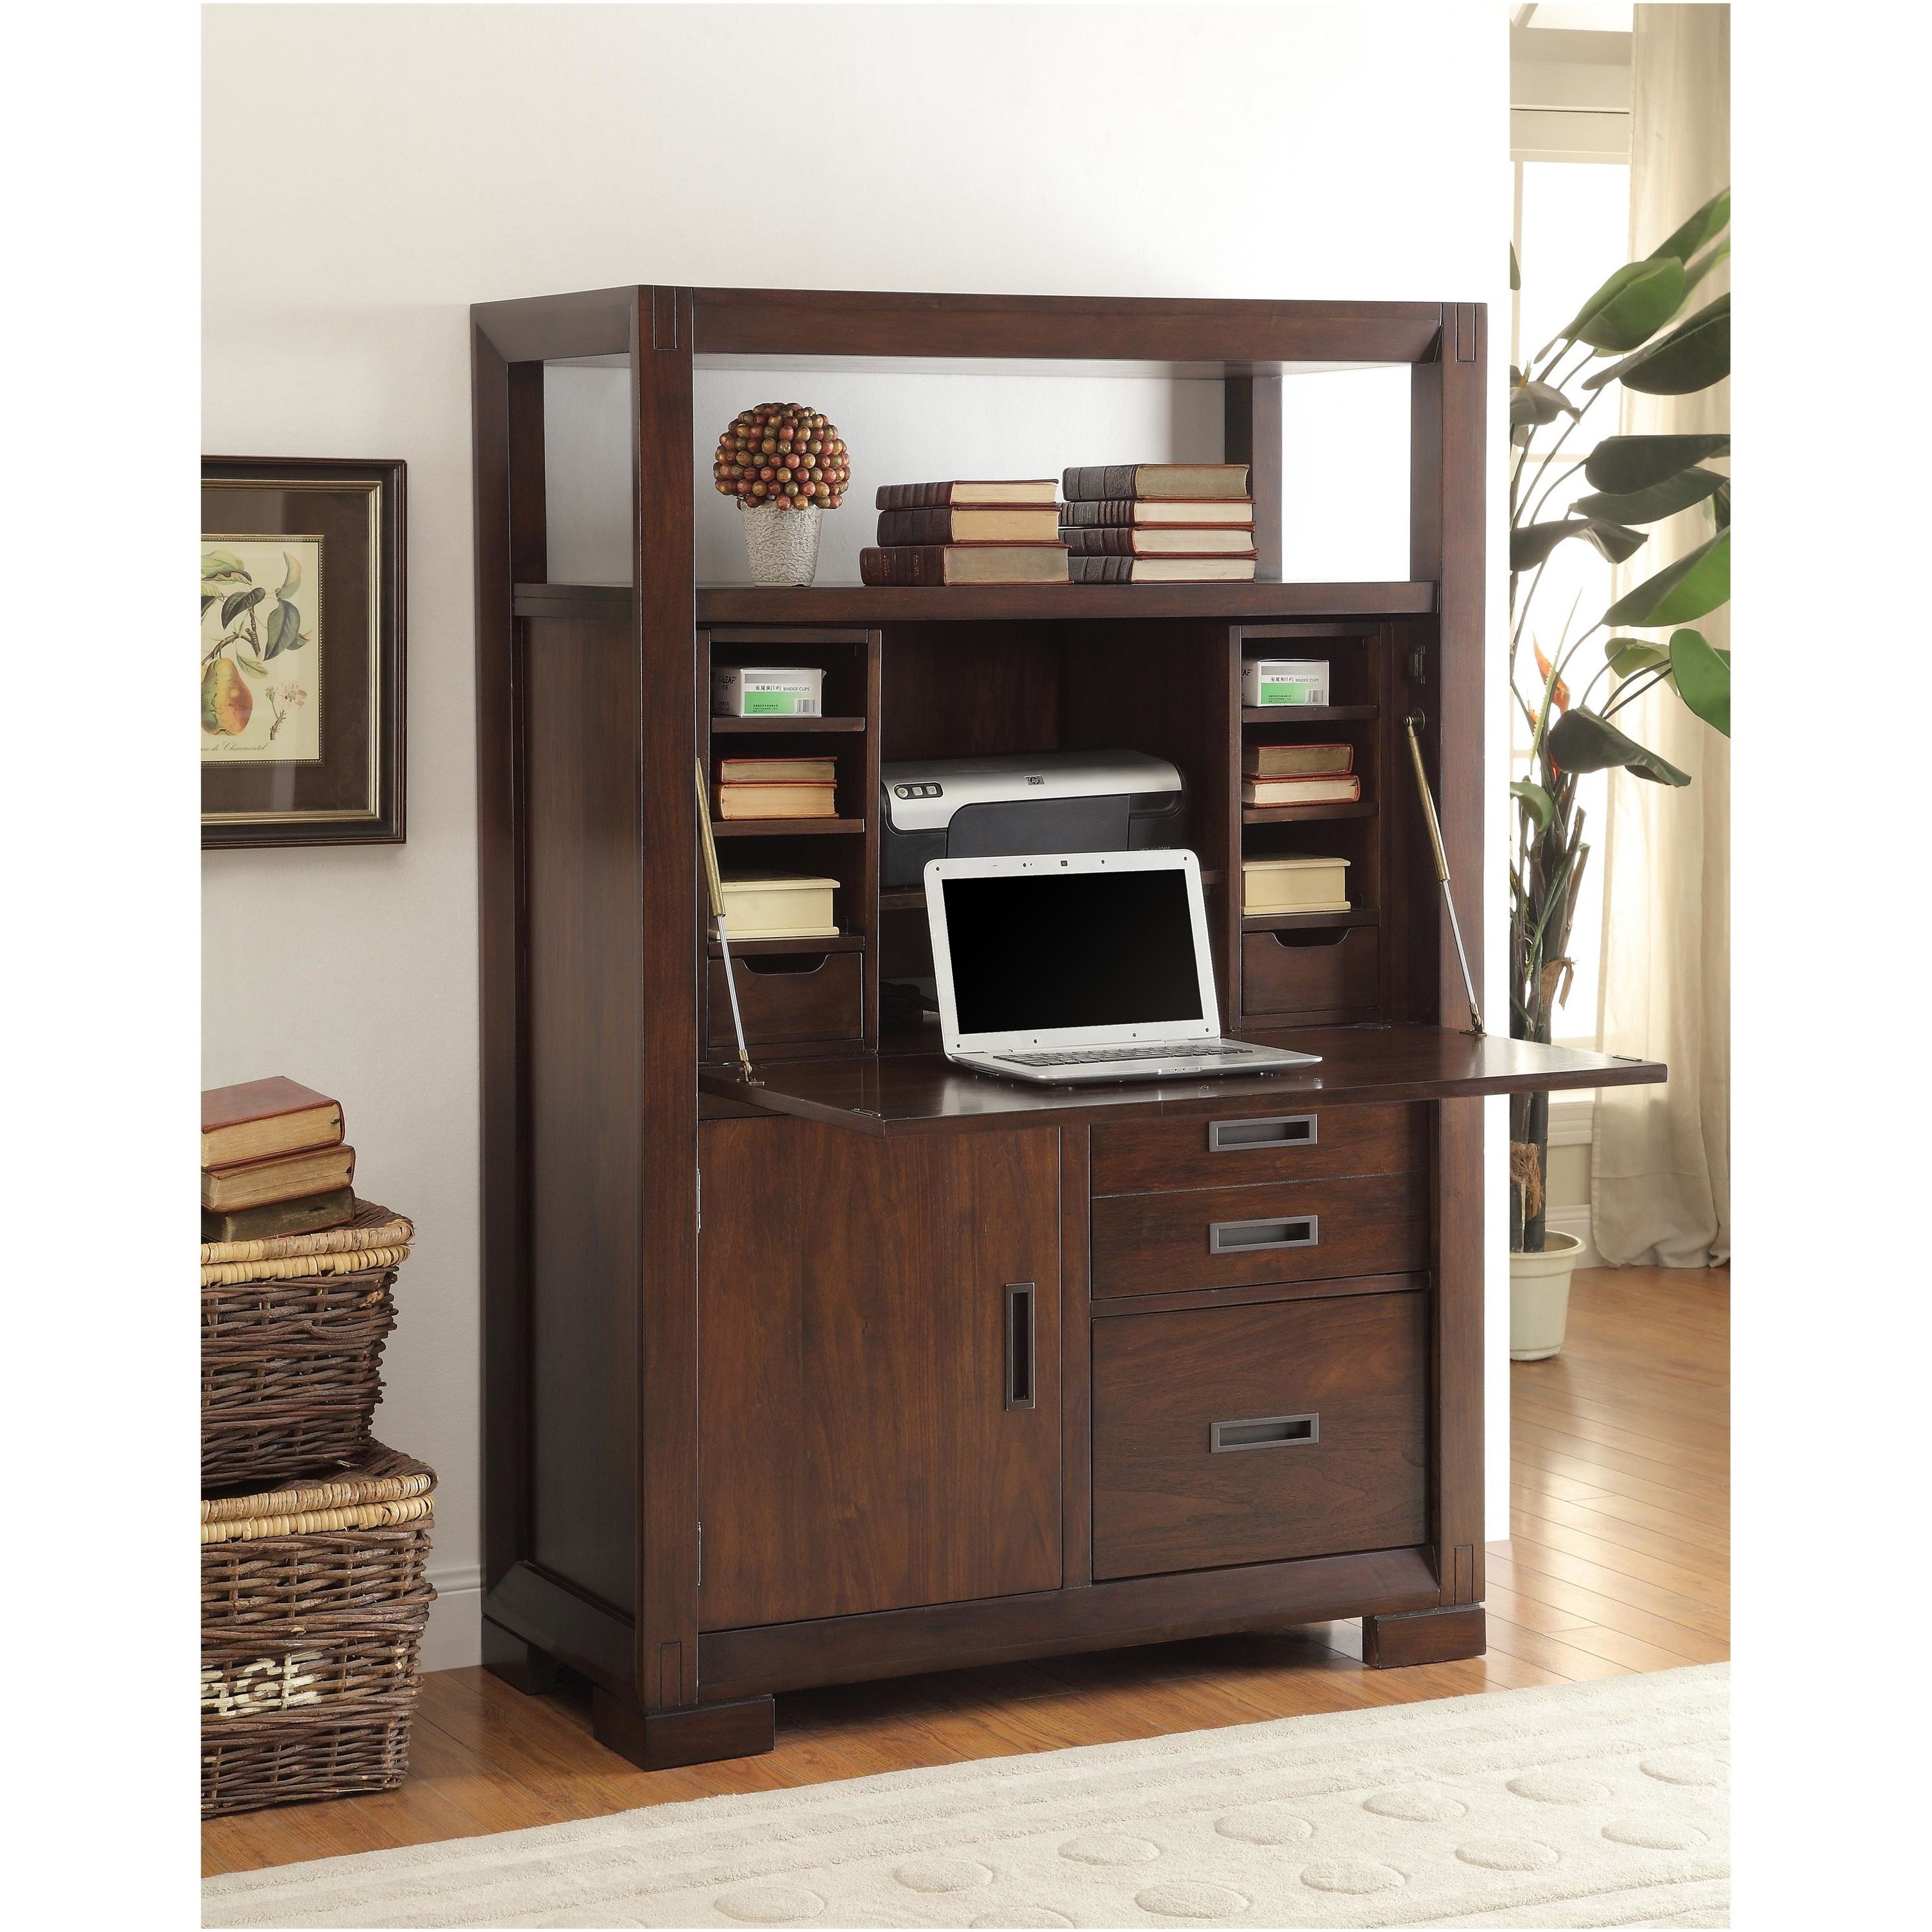 riverside furniture riata computer armoire the riverside furniture riata computer armoire is going to give you the workspace you need with the style that